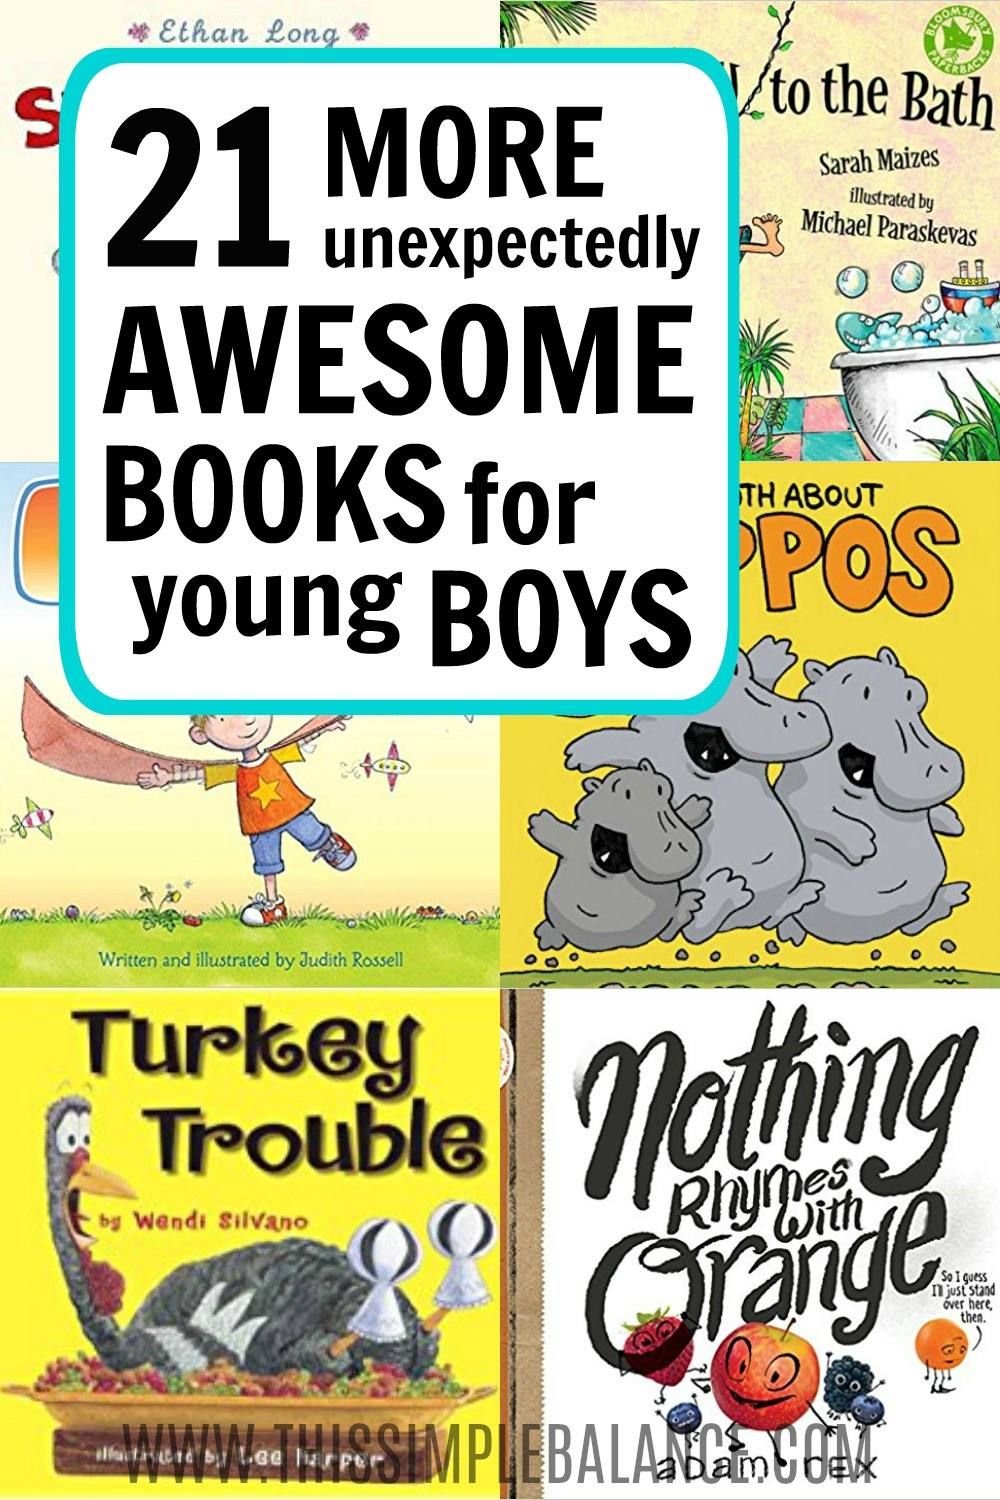 Books for boys (ages 4-6, ages 6-8): if you're having a hard time finding good books for your young boys, this book lists is just what you need (though all kids - boys and girls - will probably enjoy them, too!)